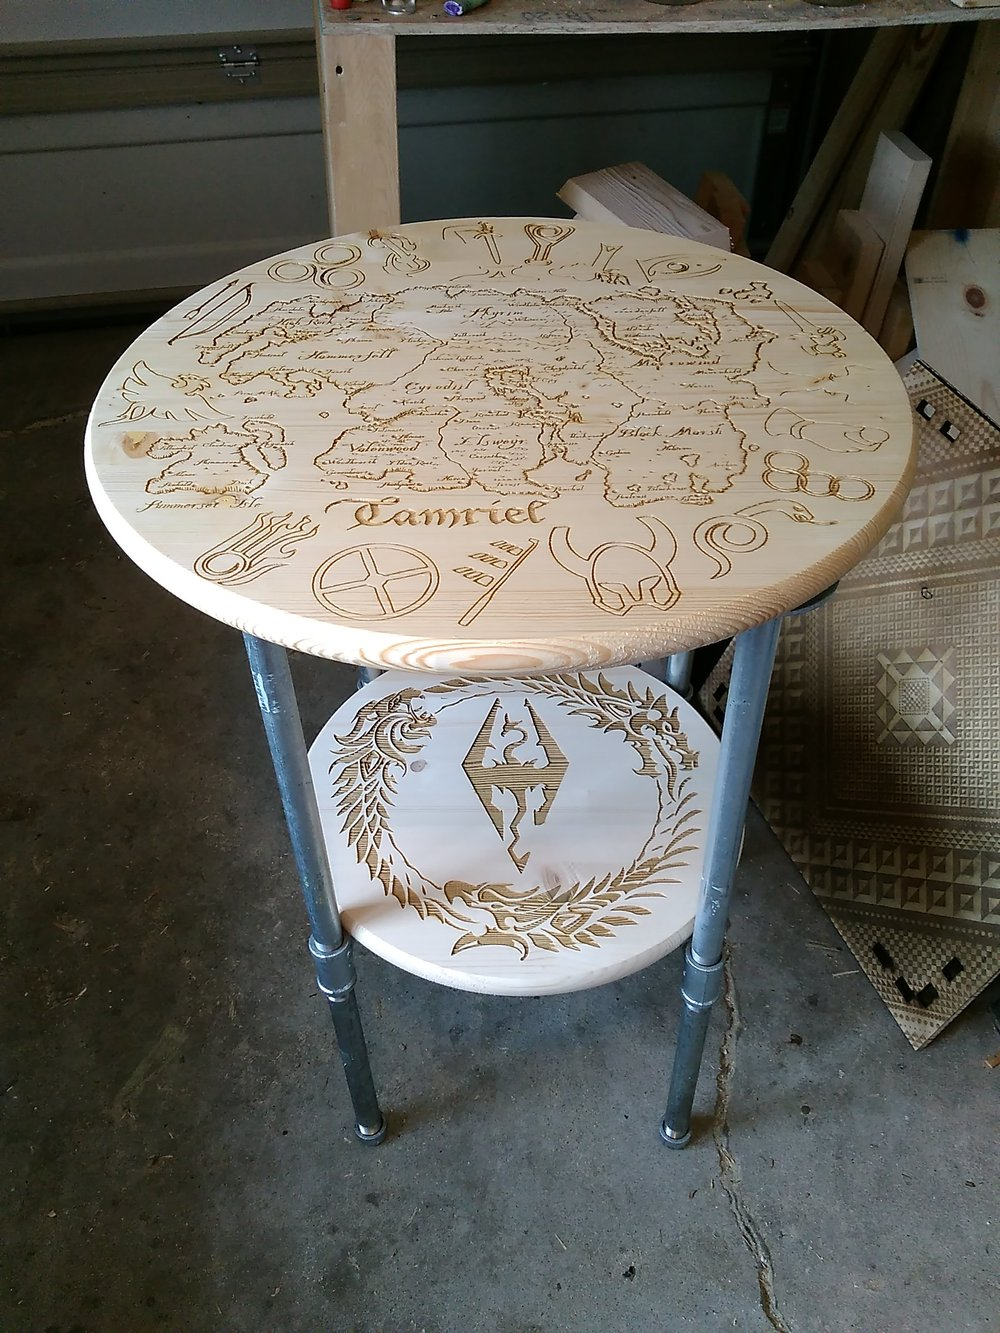 A sample of a custom table produced for a local nerd.